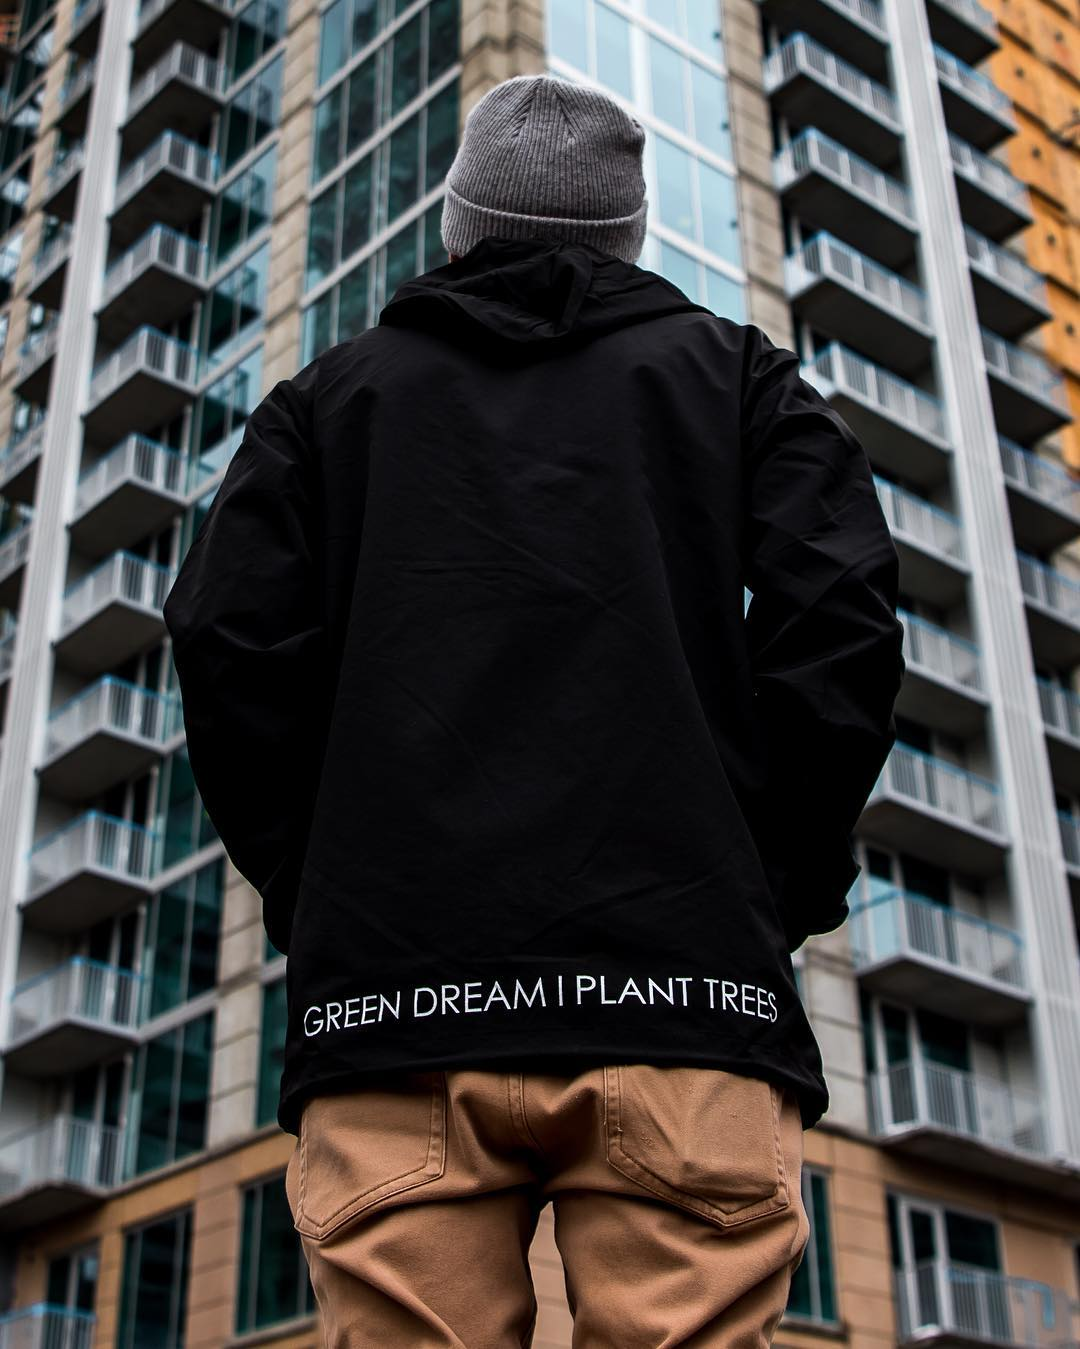 friends and loved ones, the time has come to move on up. on earth day we begin to plant 10 trees for every article of clothing sold. the goal at the pop up shop this friday is to collectively plant 10,000 trees.  post a favorite photo with your green...